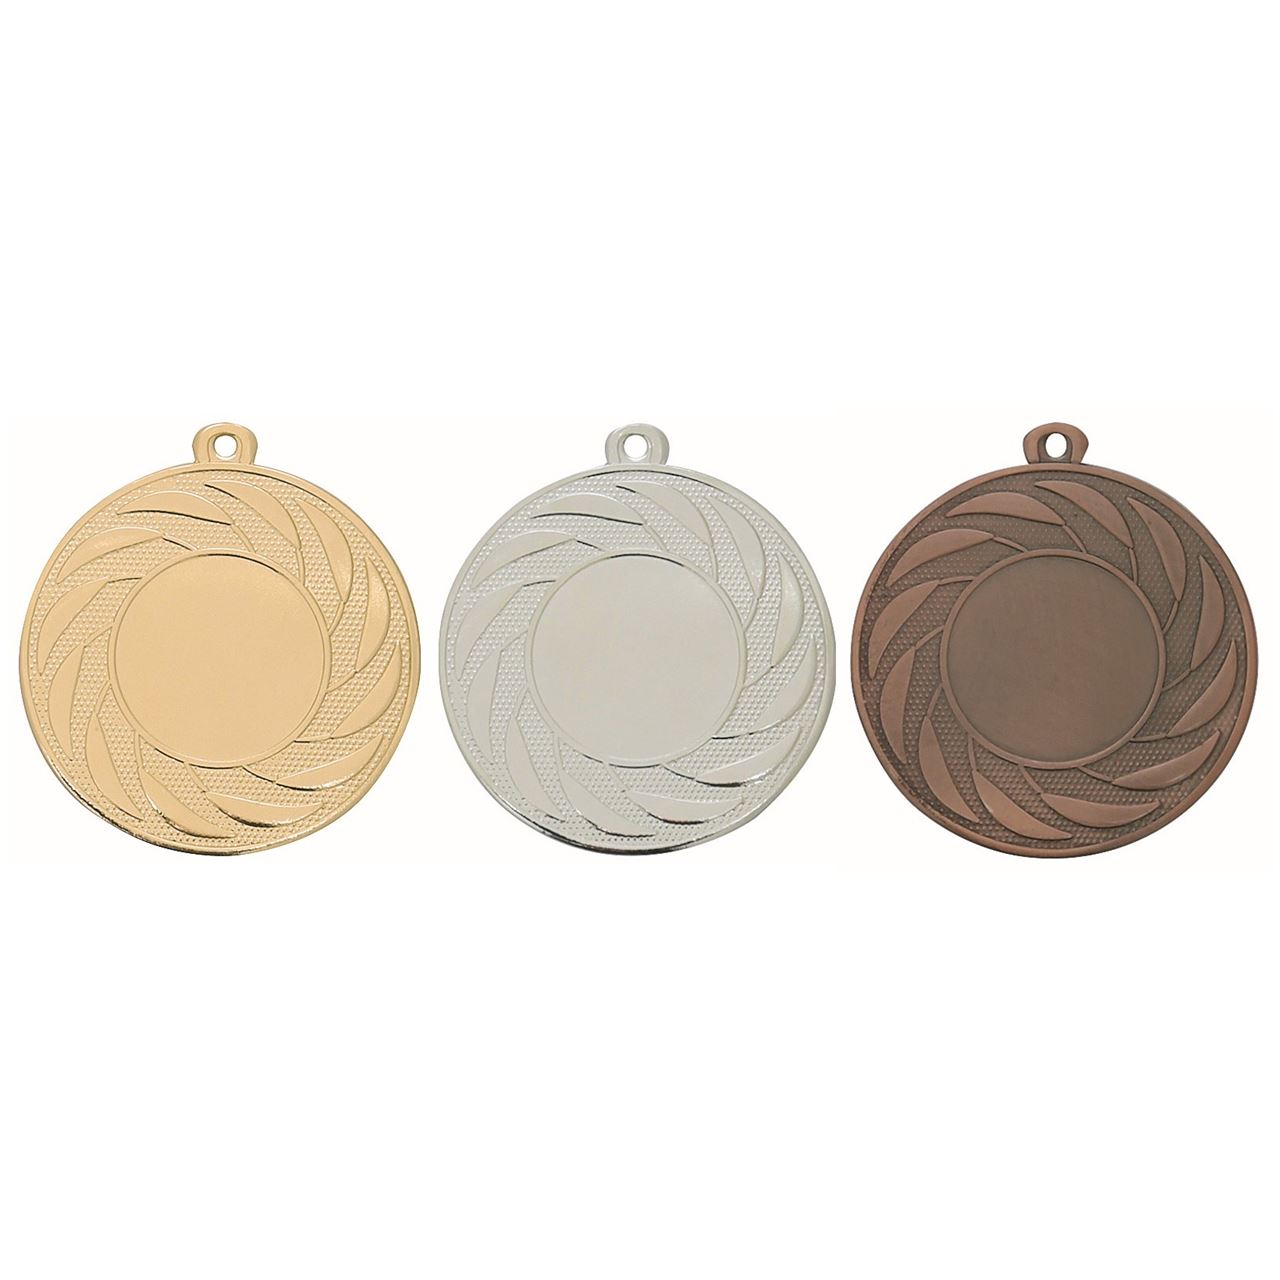 Pack of 1000 Radial Medals with Ribbons & Logo Inserts (50mm) - M9312/SET1000